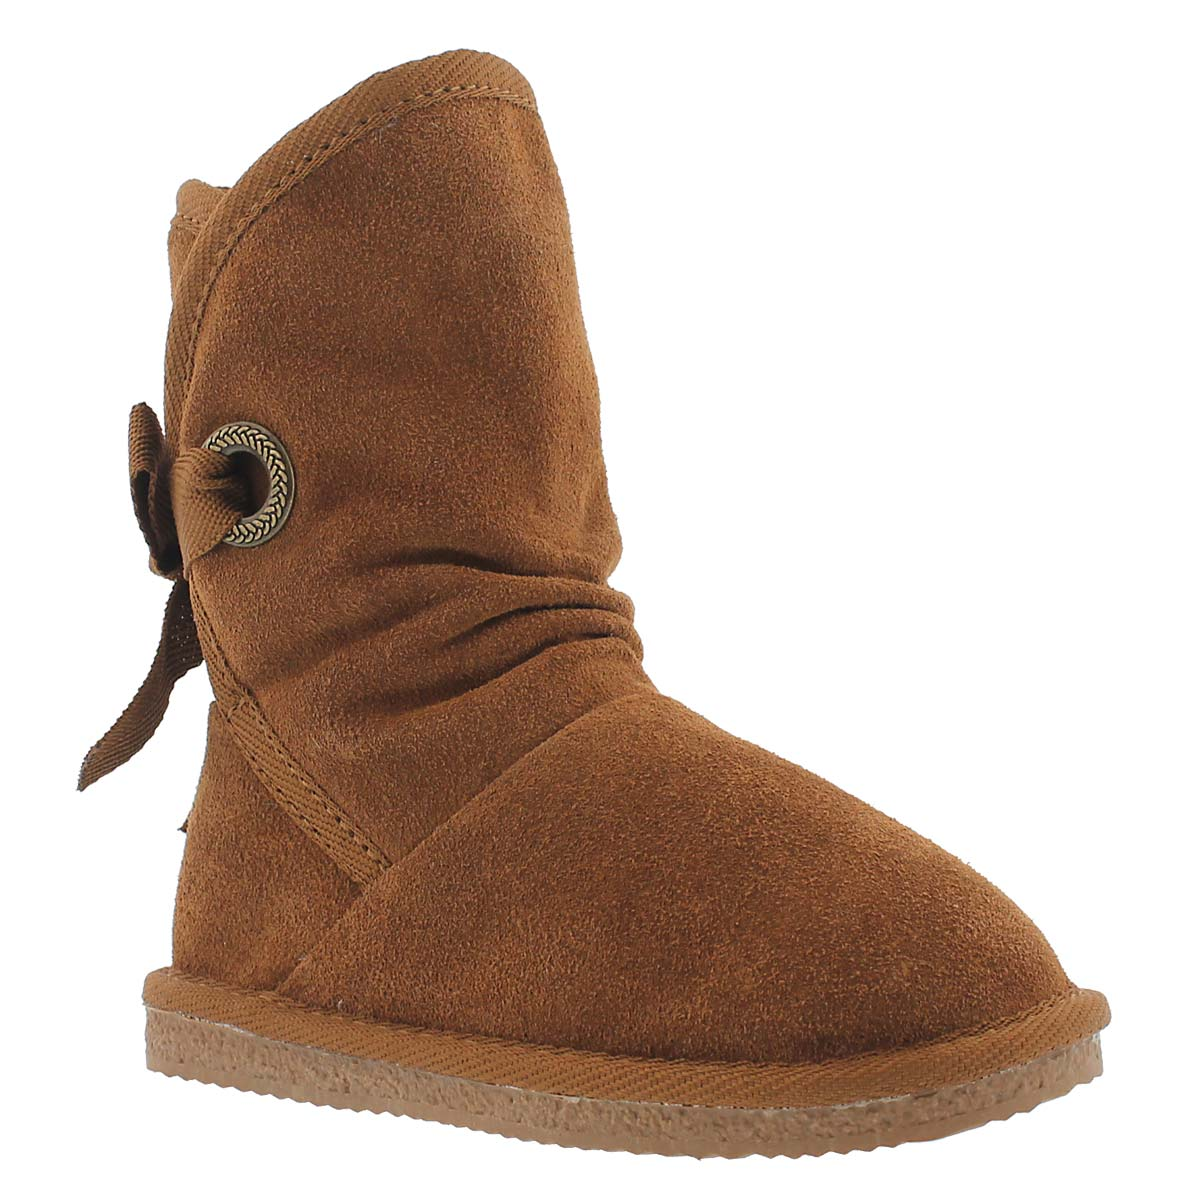 Girls' RIBBON JR chestnut casual boots